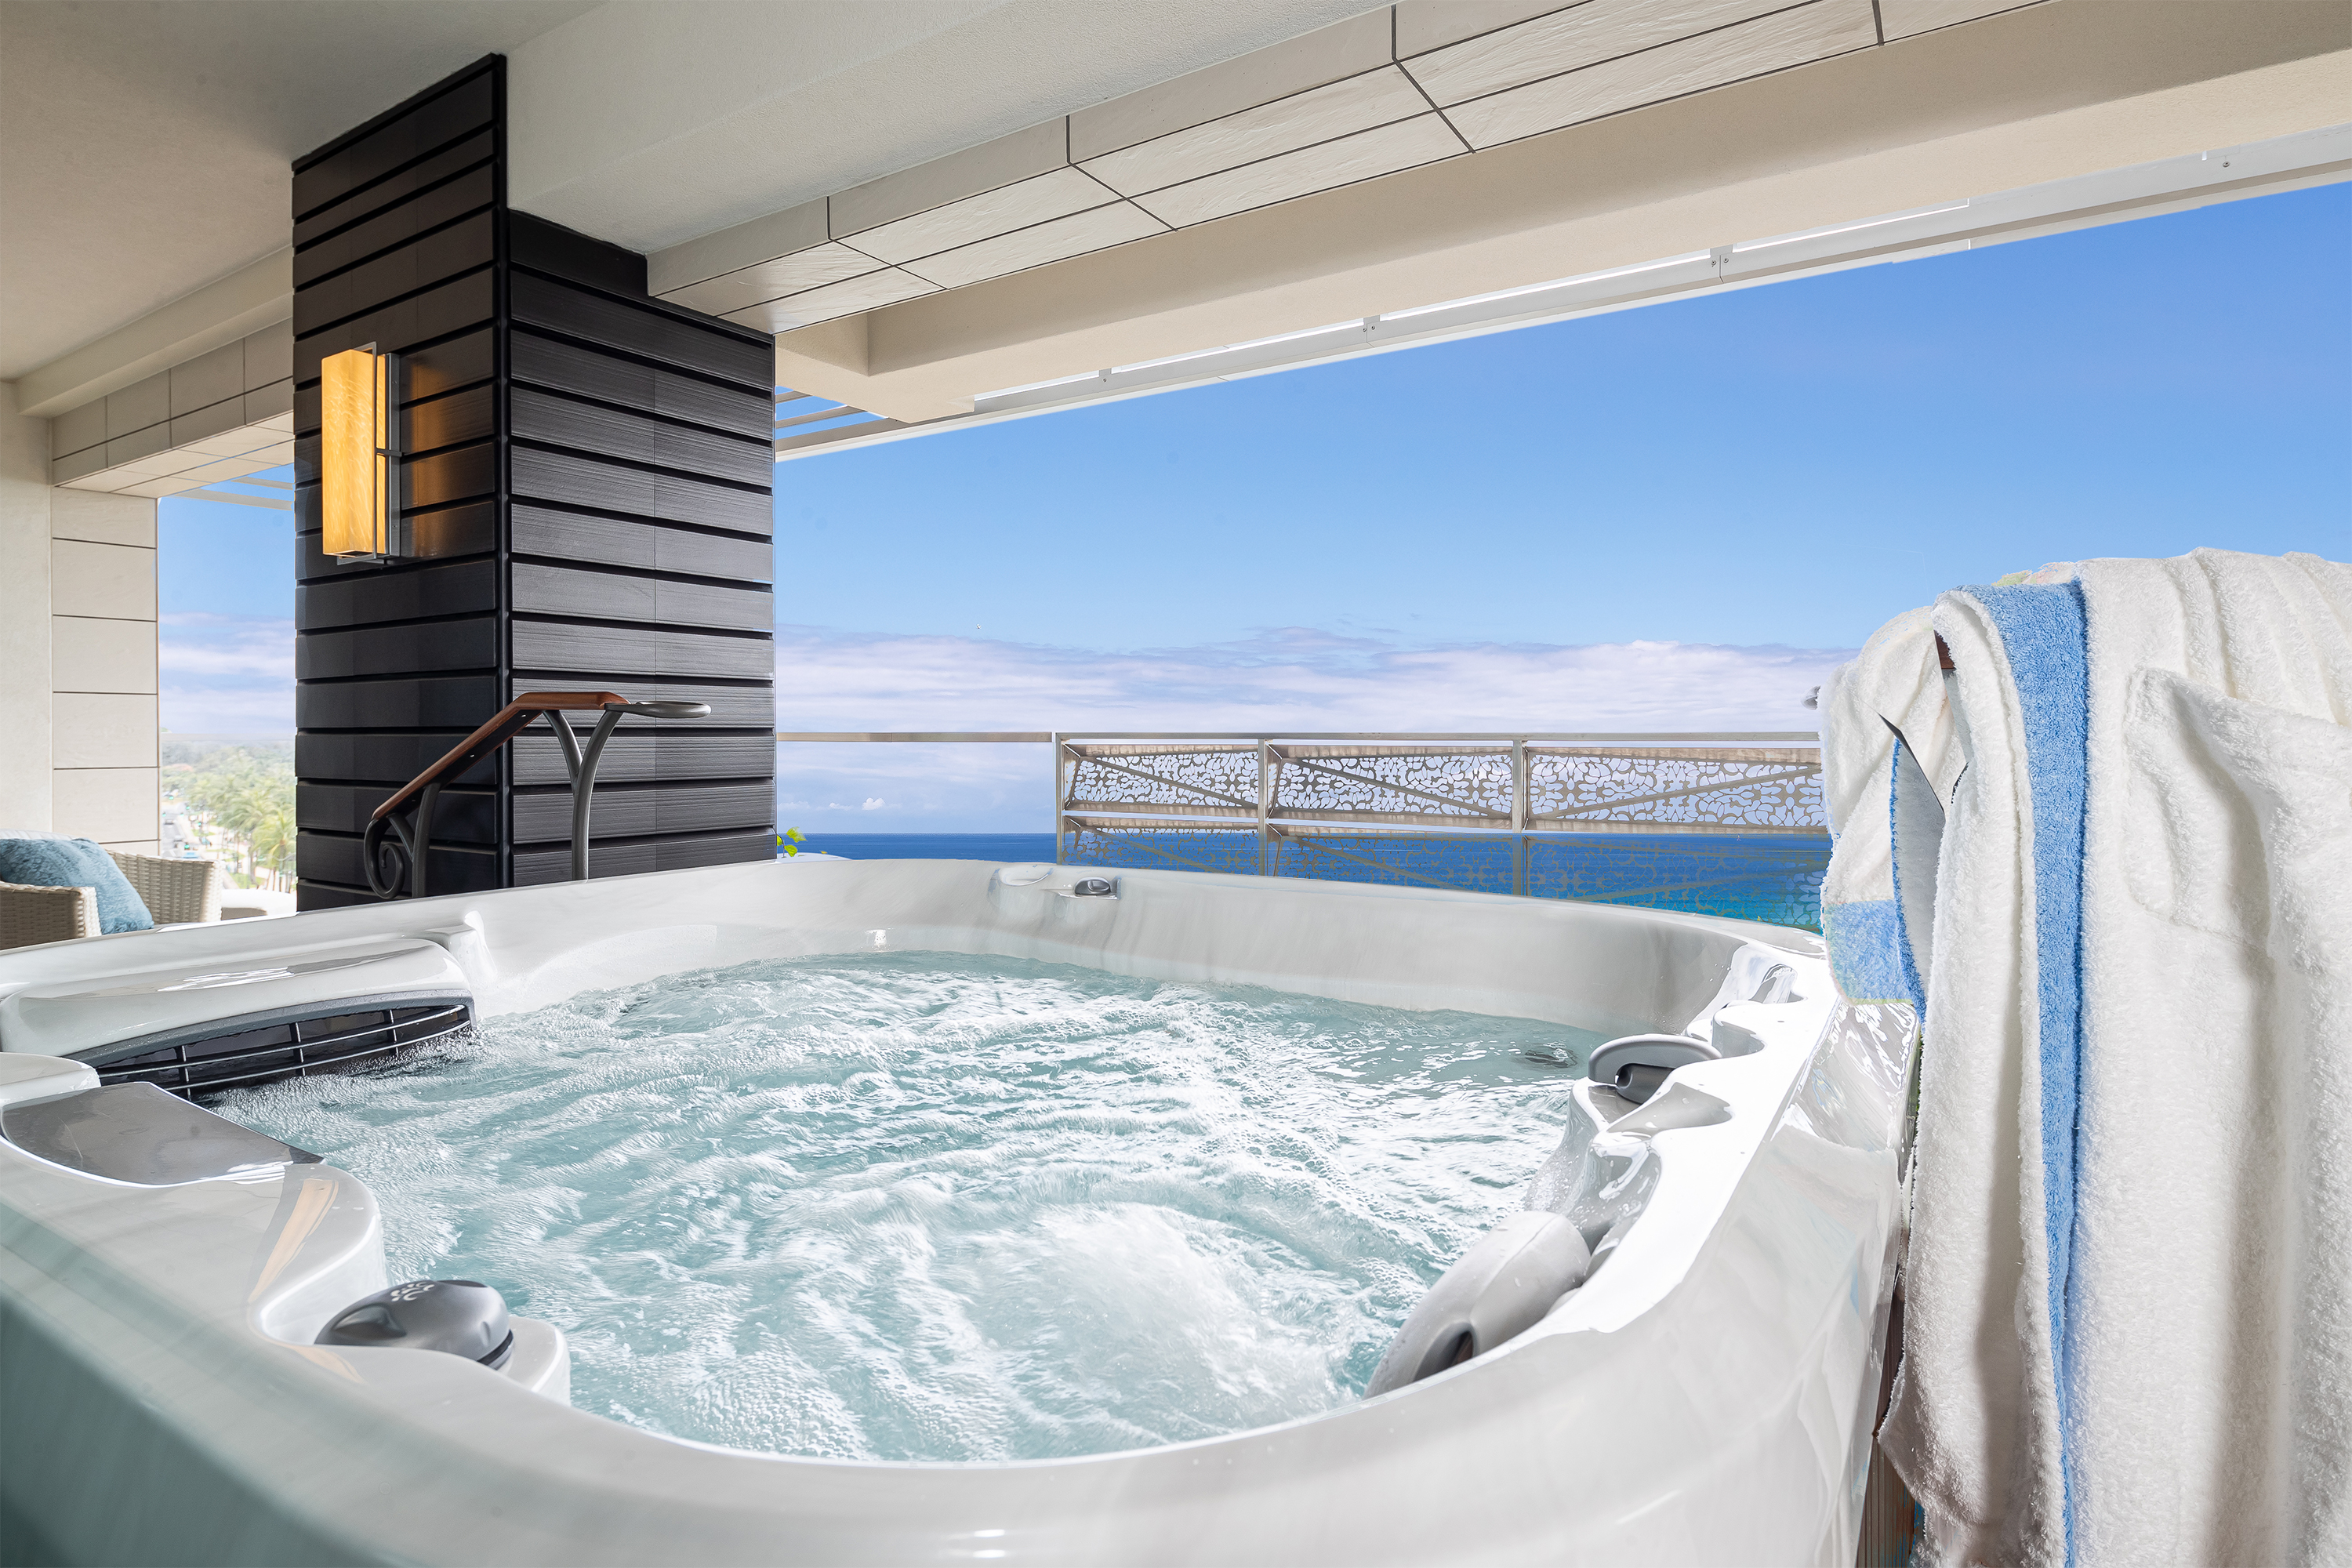 Jacuzzi on balcony with ocen views